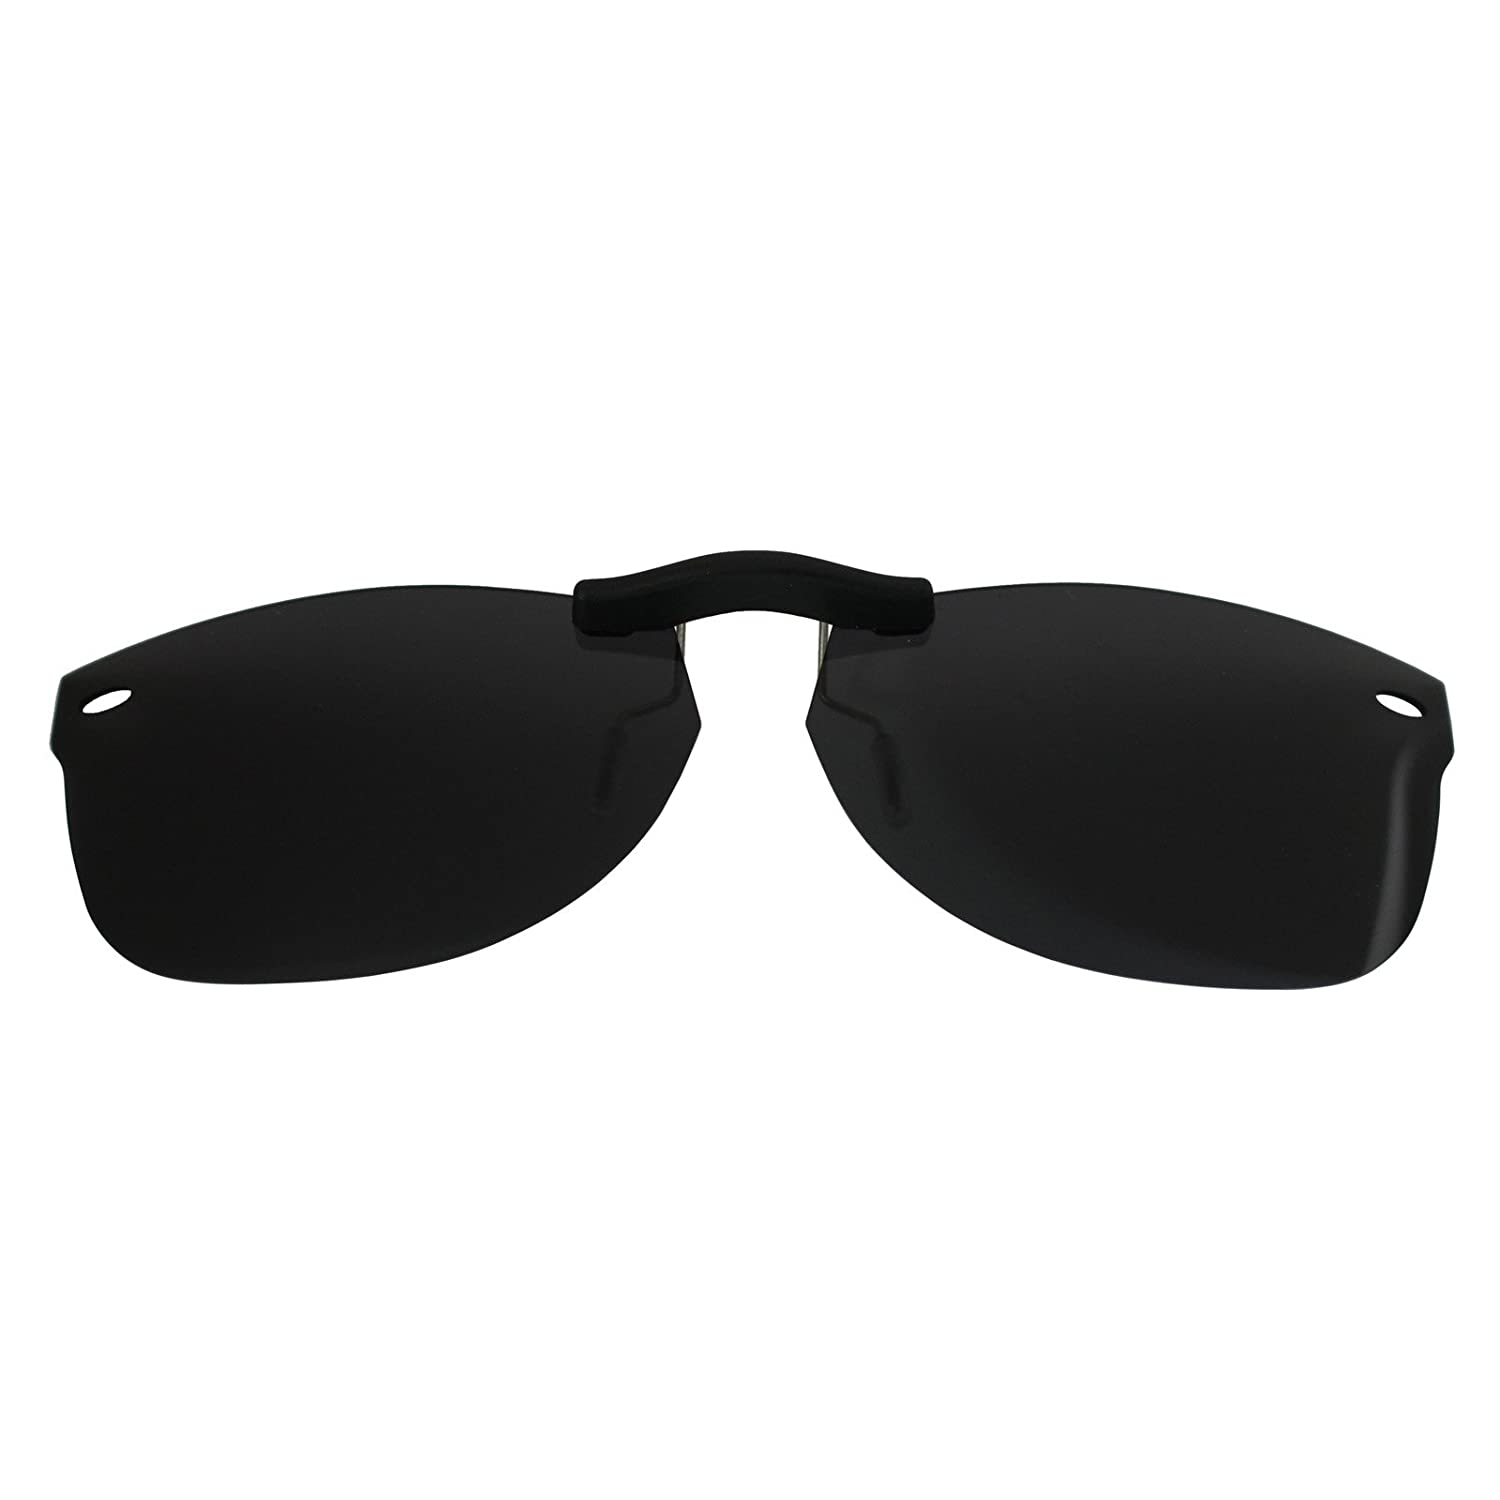 209ed03e6634 Custom Polarized Clip On Sunglasses for Ray-Ban RB5184 (RX5184)  50-18-145(No Frame) Black - - Amazon.com